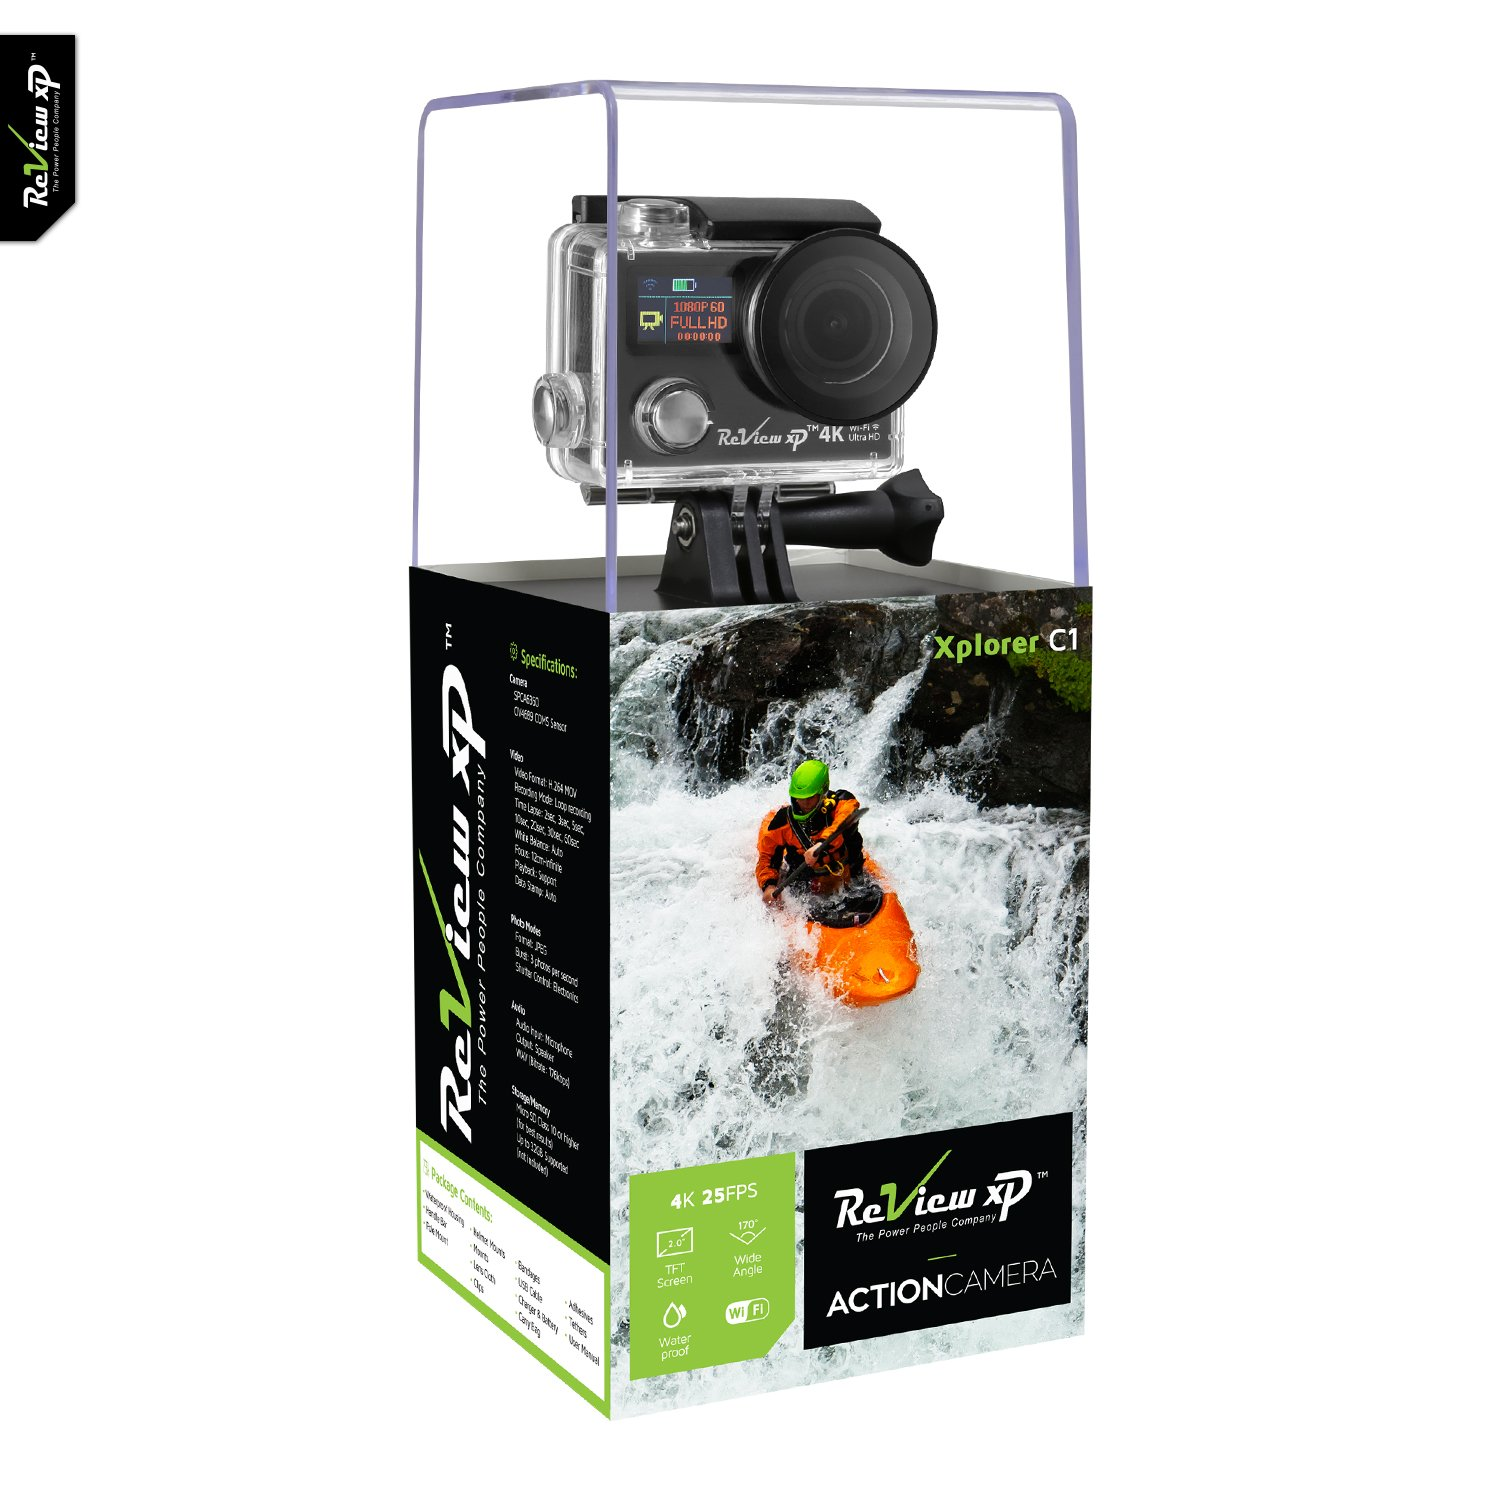 Review XP 4K Wi-Fi Waterproof Sports Action Camera 12MP 25fps HD Video Underwater Camcorder 170° Wide Angle Dual Screen Battery Accessories Kit – Black